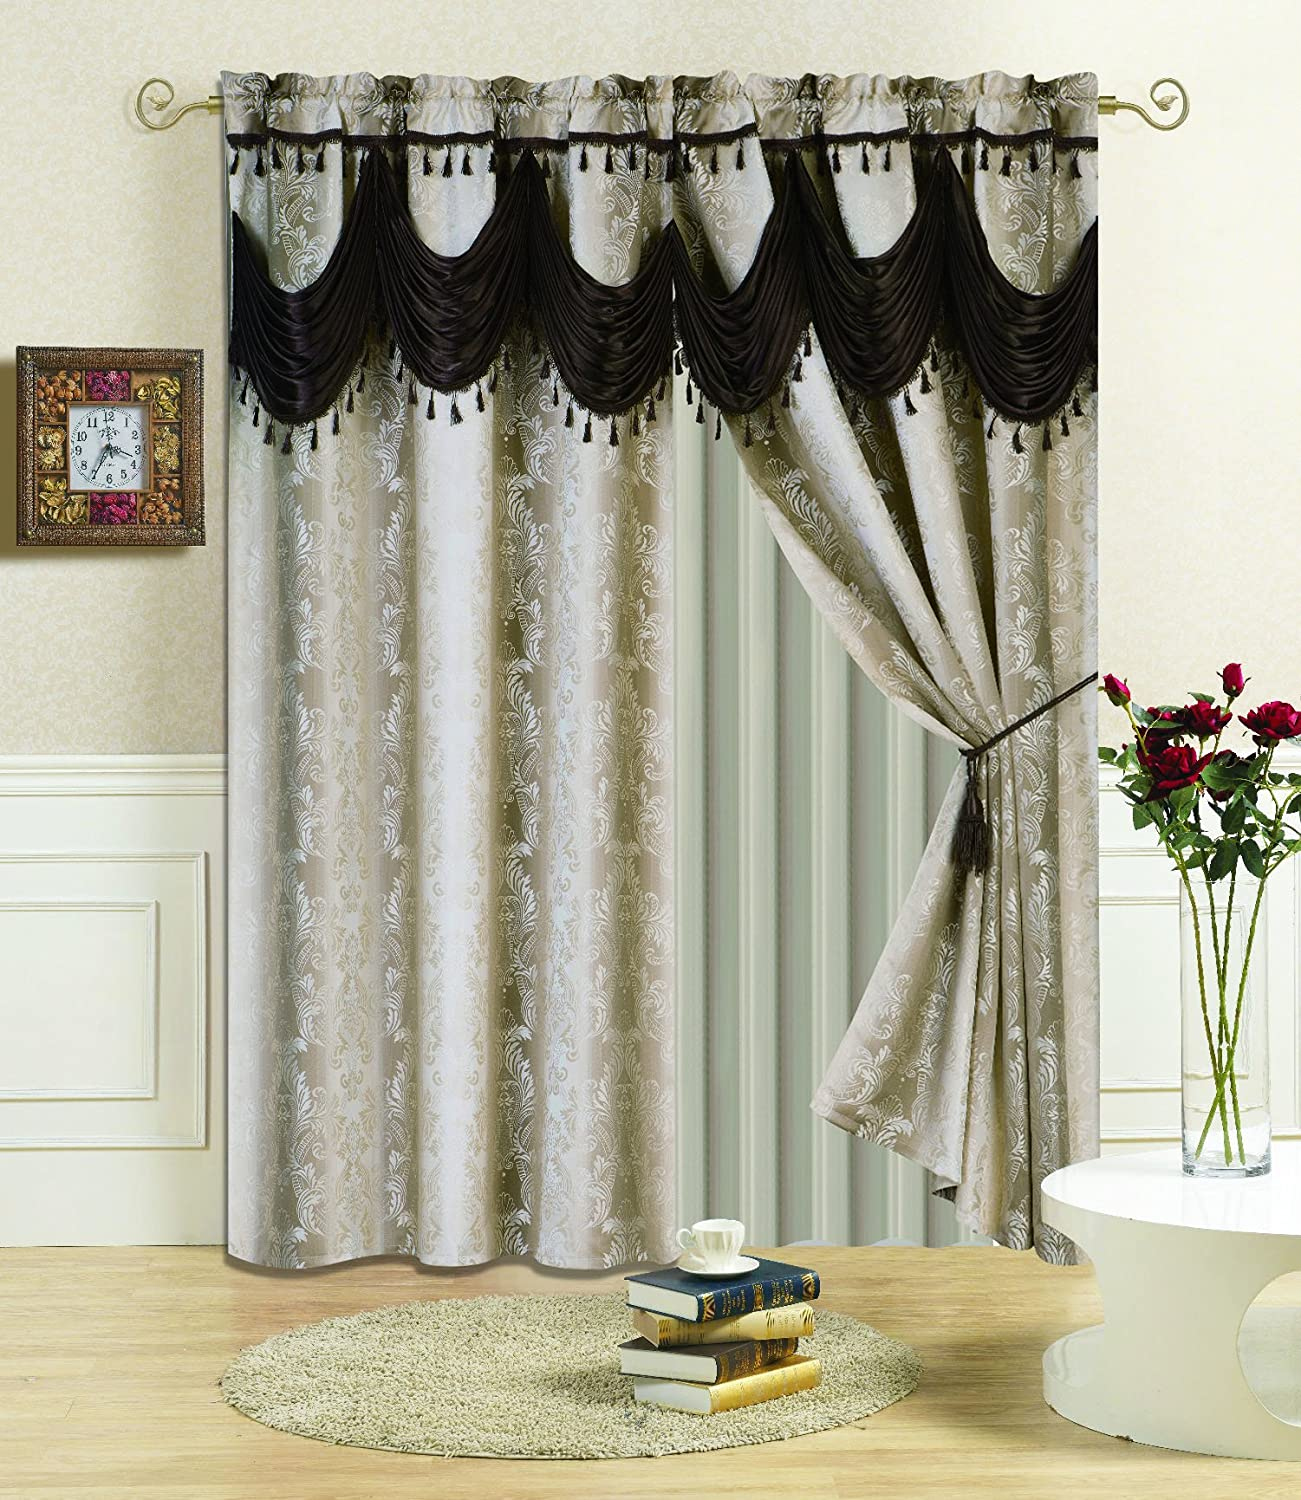 All American Collection New 4 Piece Beige Drape Set with Attached Coffee Valance and Sheer with 2 Tie Backs Included